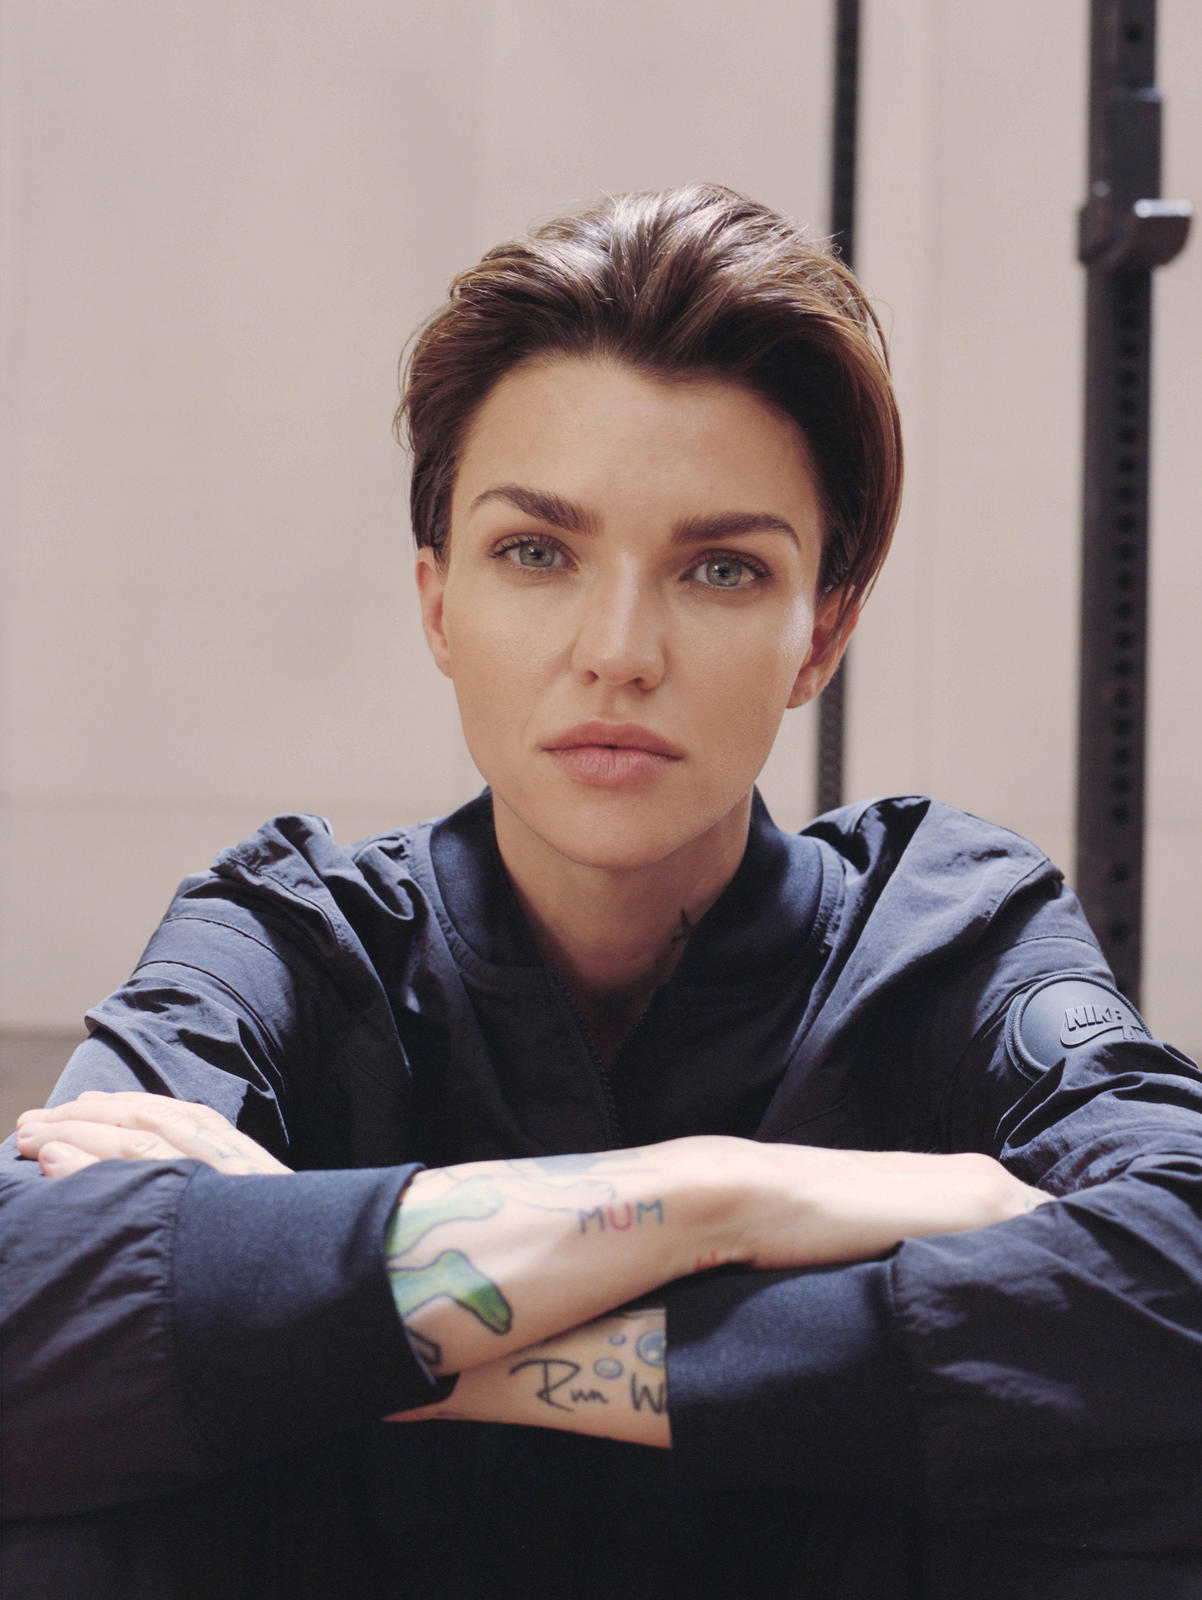 Force is Female Celebrates Ruby Rose's Relentless Drive 4